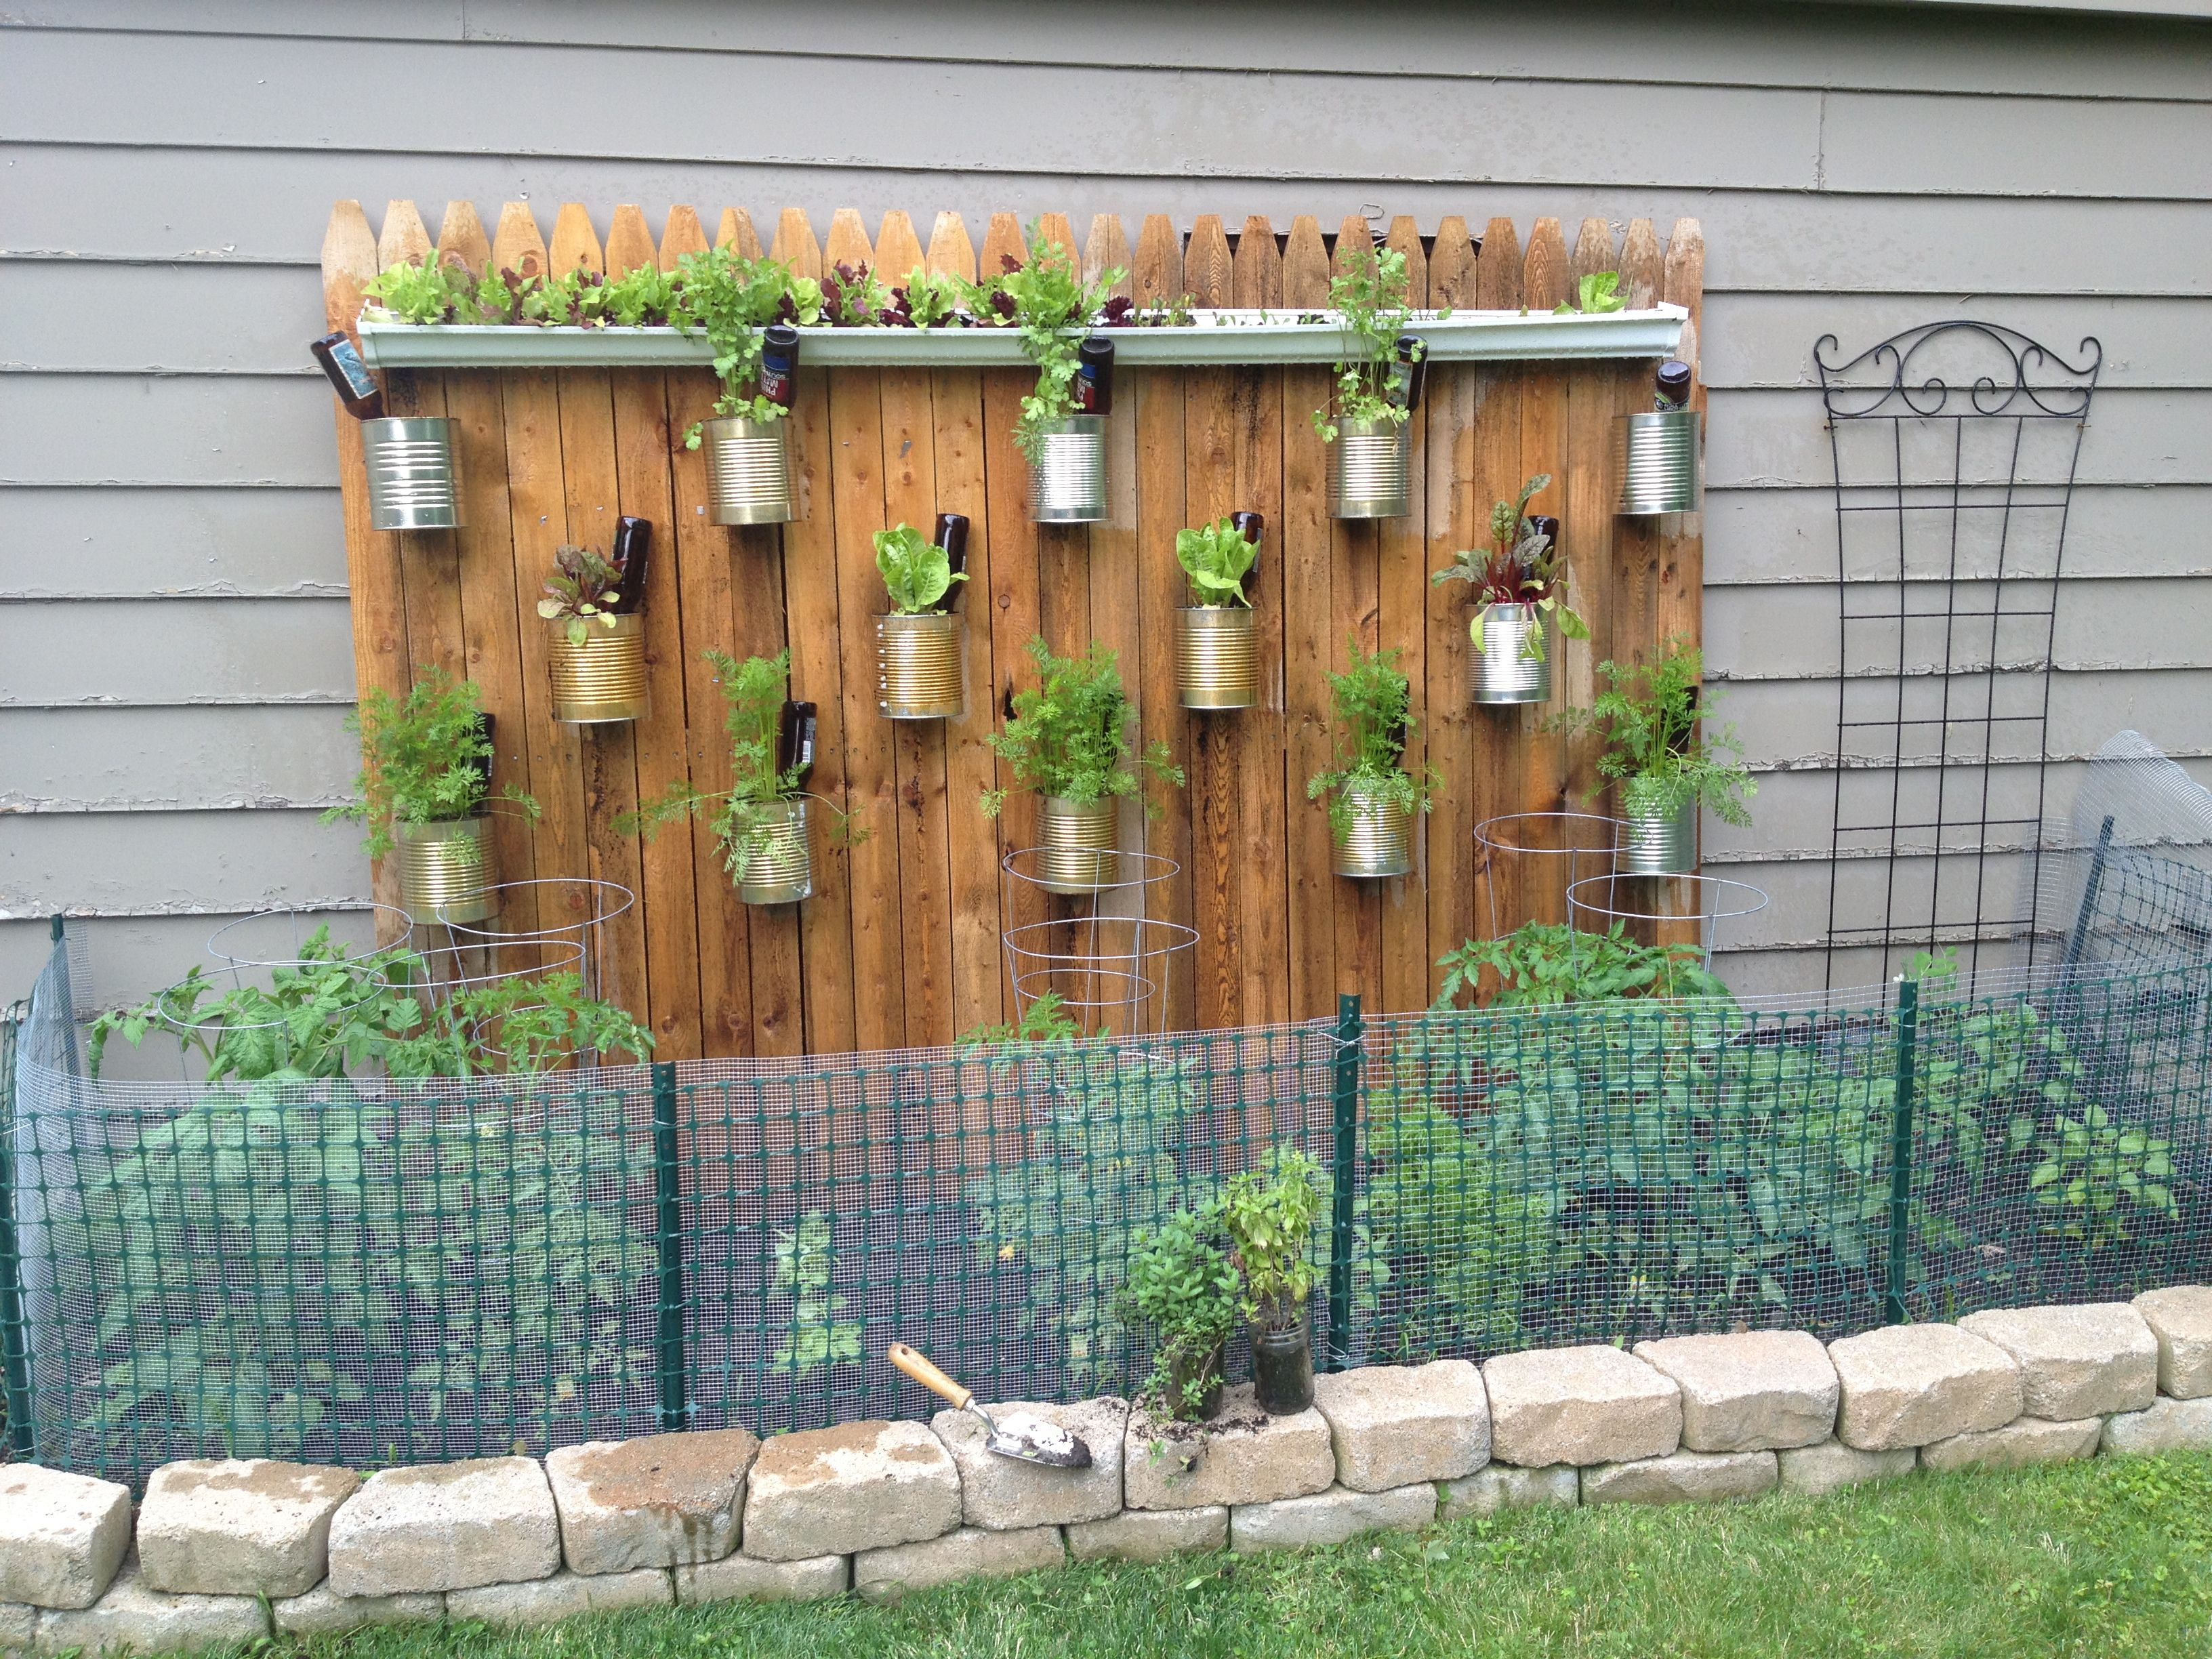 Groundhog Proof Garden Fence - Garden Inspiration